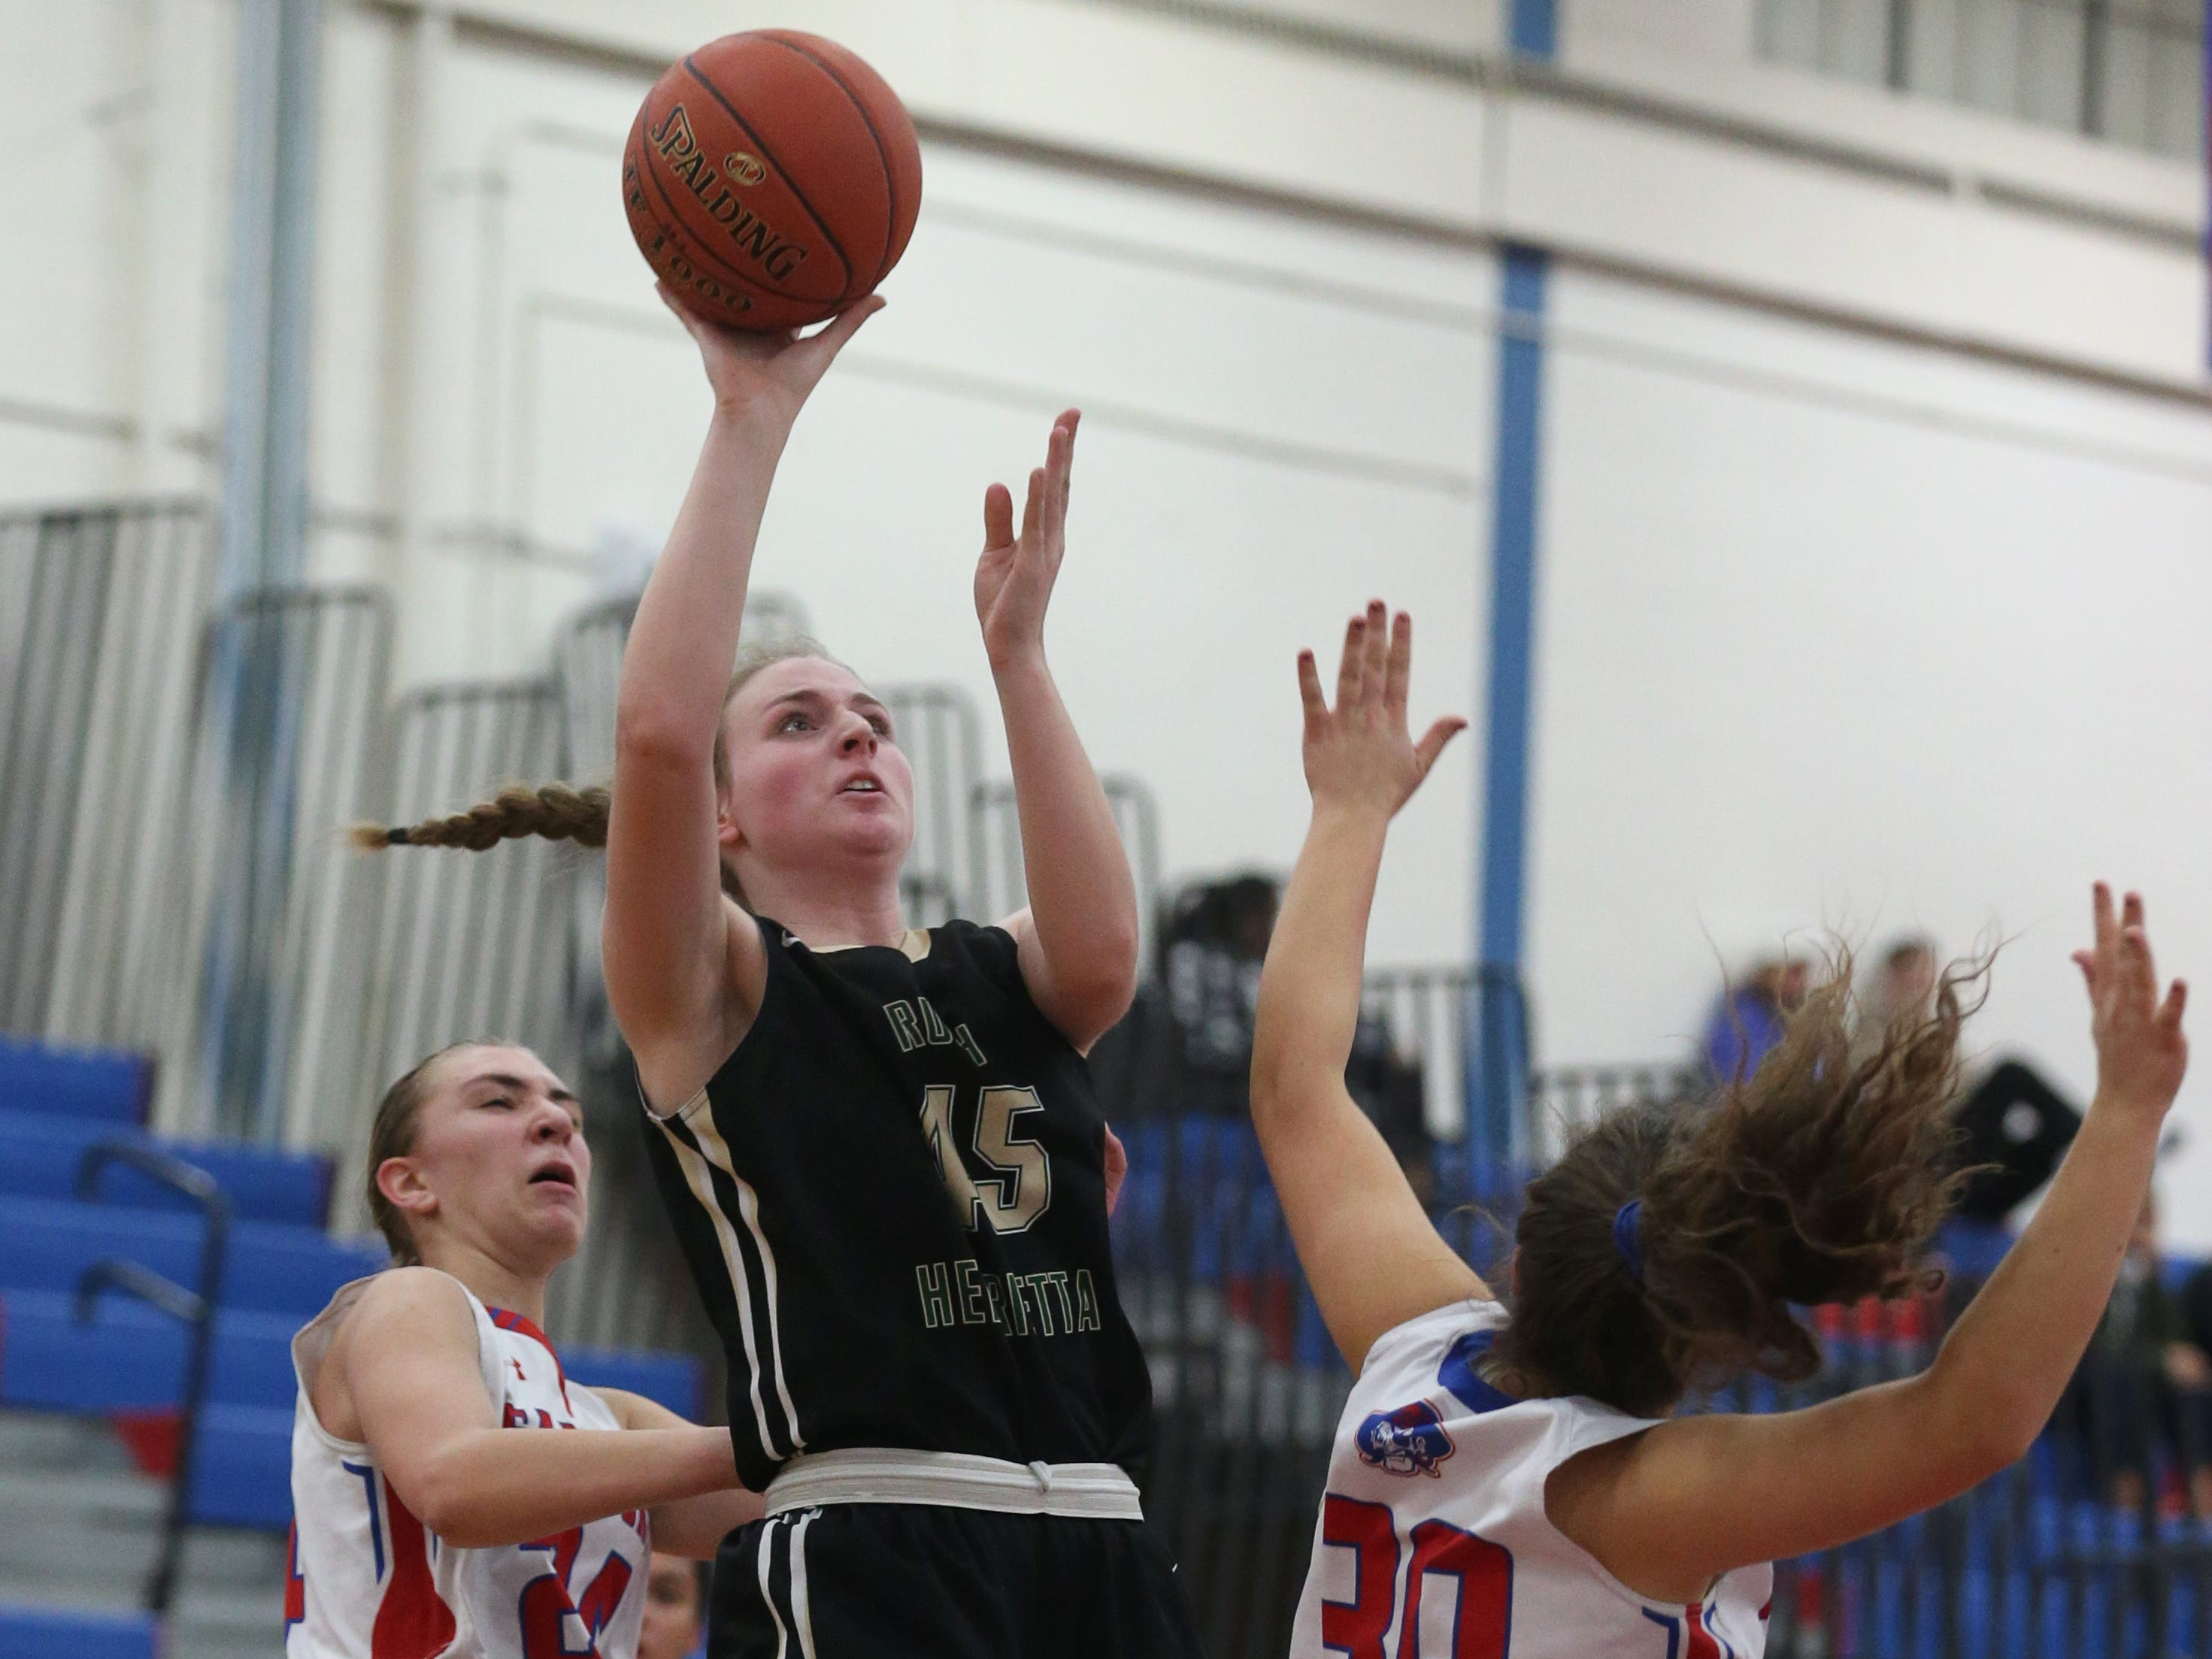 Rush-Henrietta's  Rebecca Gregg, center, puts up a shot between Fairport's Bryn Homes, right, and Riley DeRue, left.